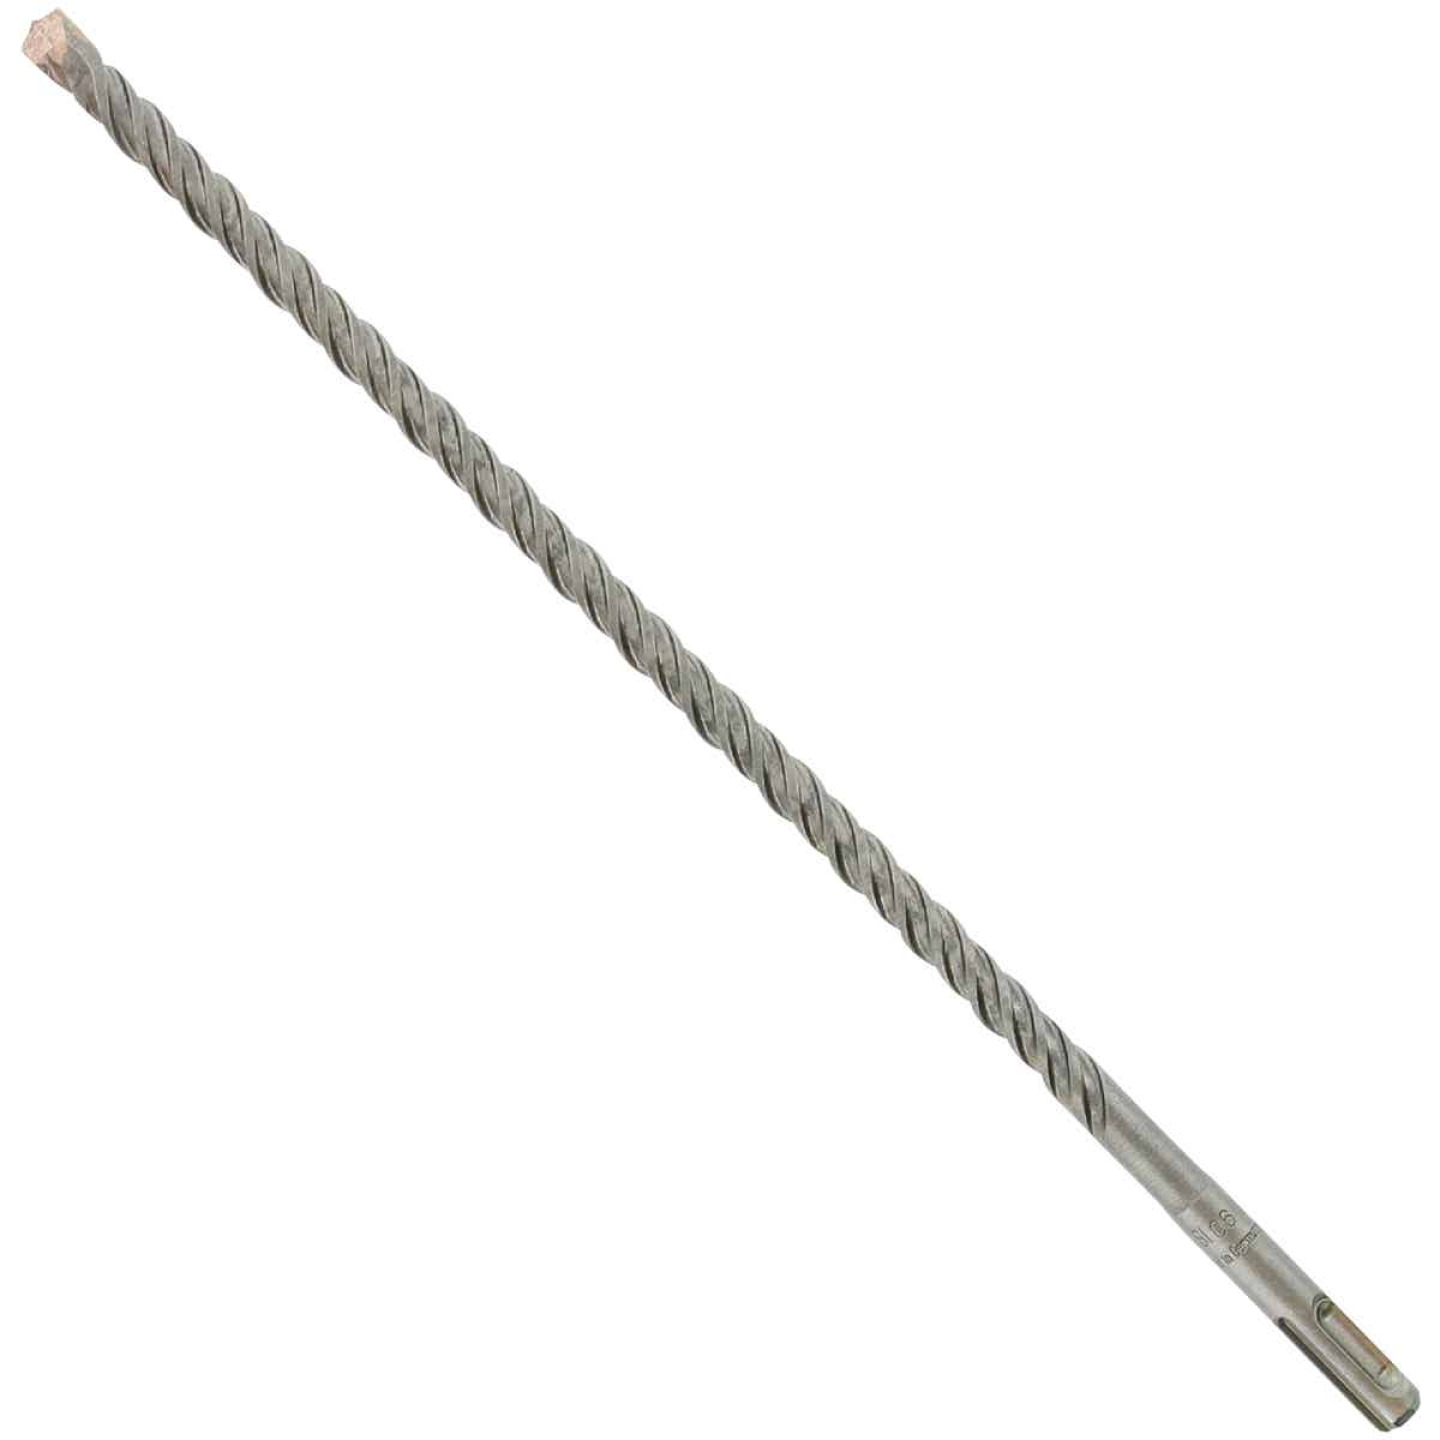 Diablo SDS-Plus 3/8 In. x 12 In. Carbide-Tipped Rotary Hammer Drill Bit (25-Pack) Image 1